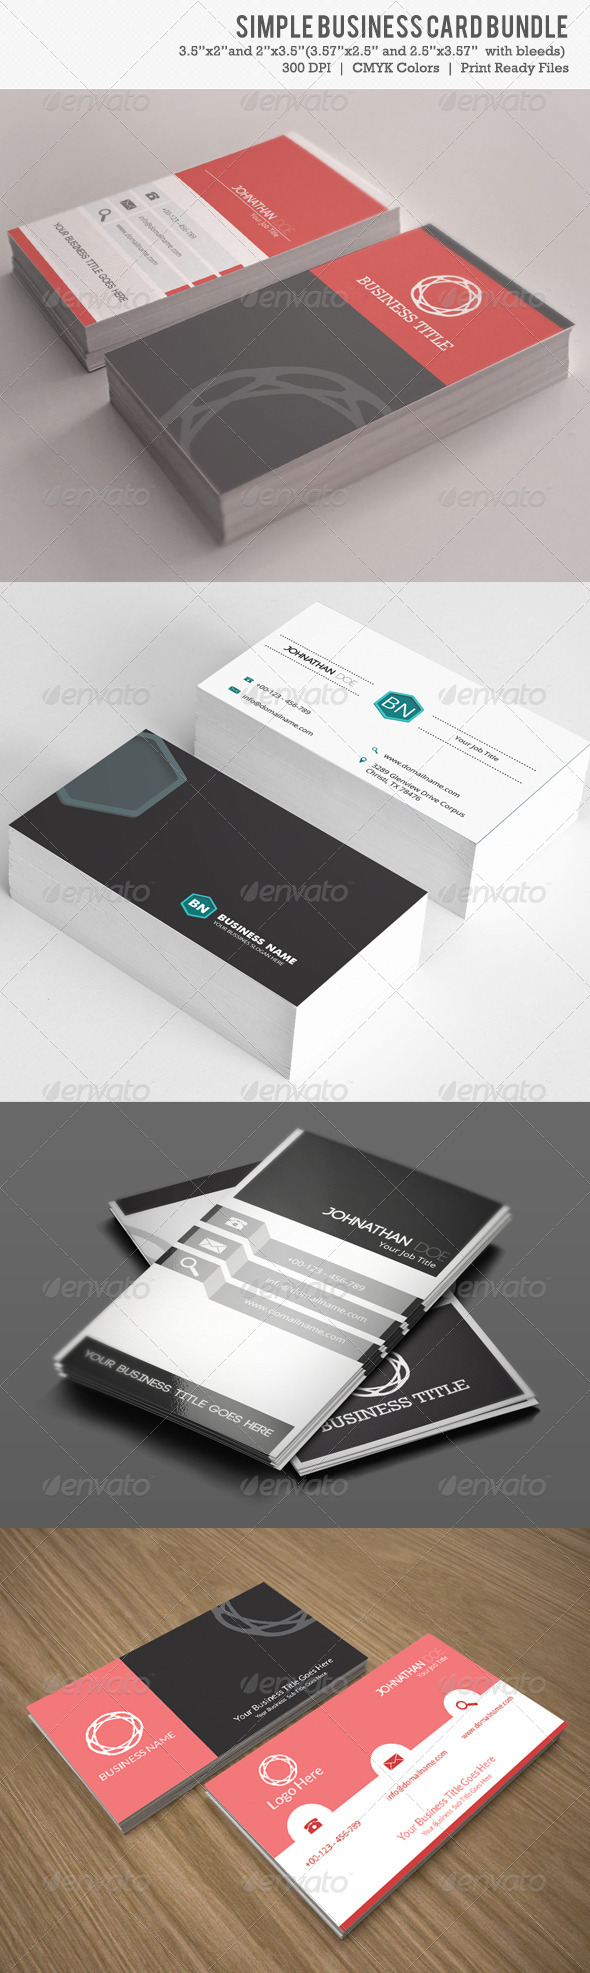 GraphicRiver Simple Business Card Bundle 4 IN 1 6262599